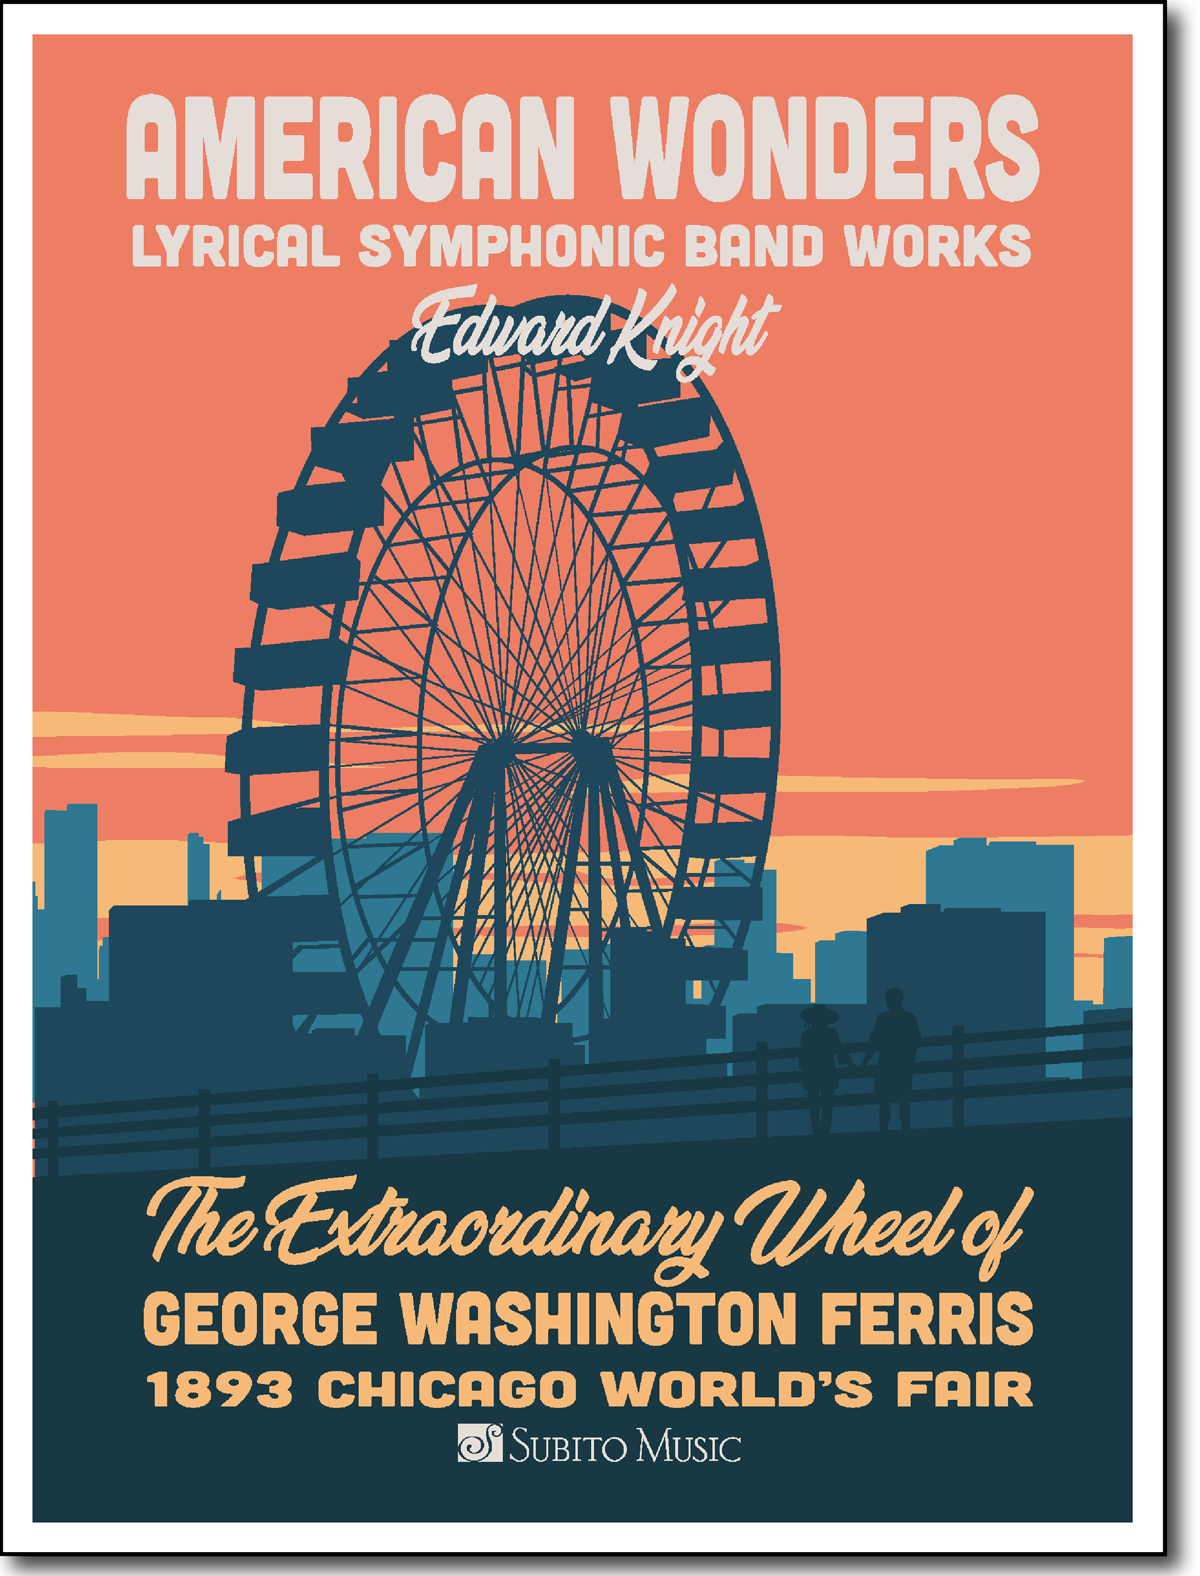 American Wonders: The Extraordinary Wheel of G. W. Ferris for Concert Band